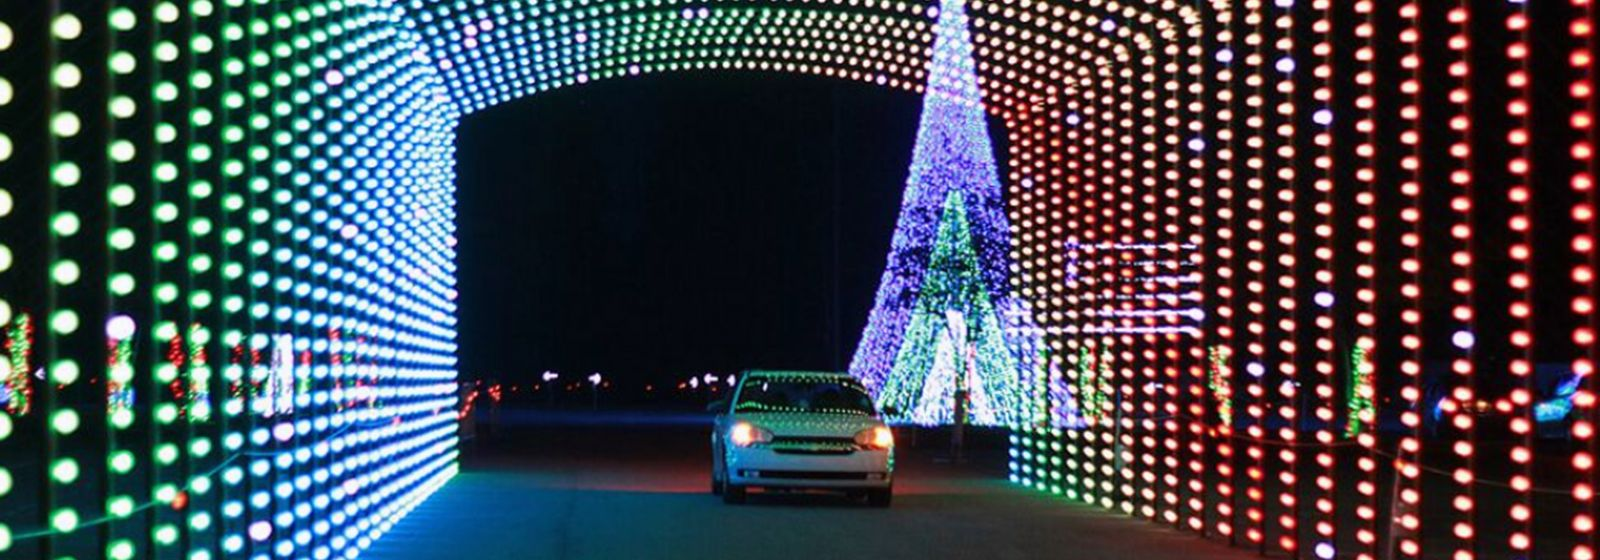 Where to find big, bright holiday light displays